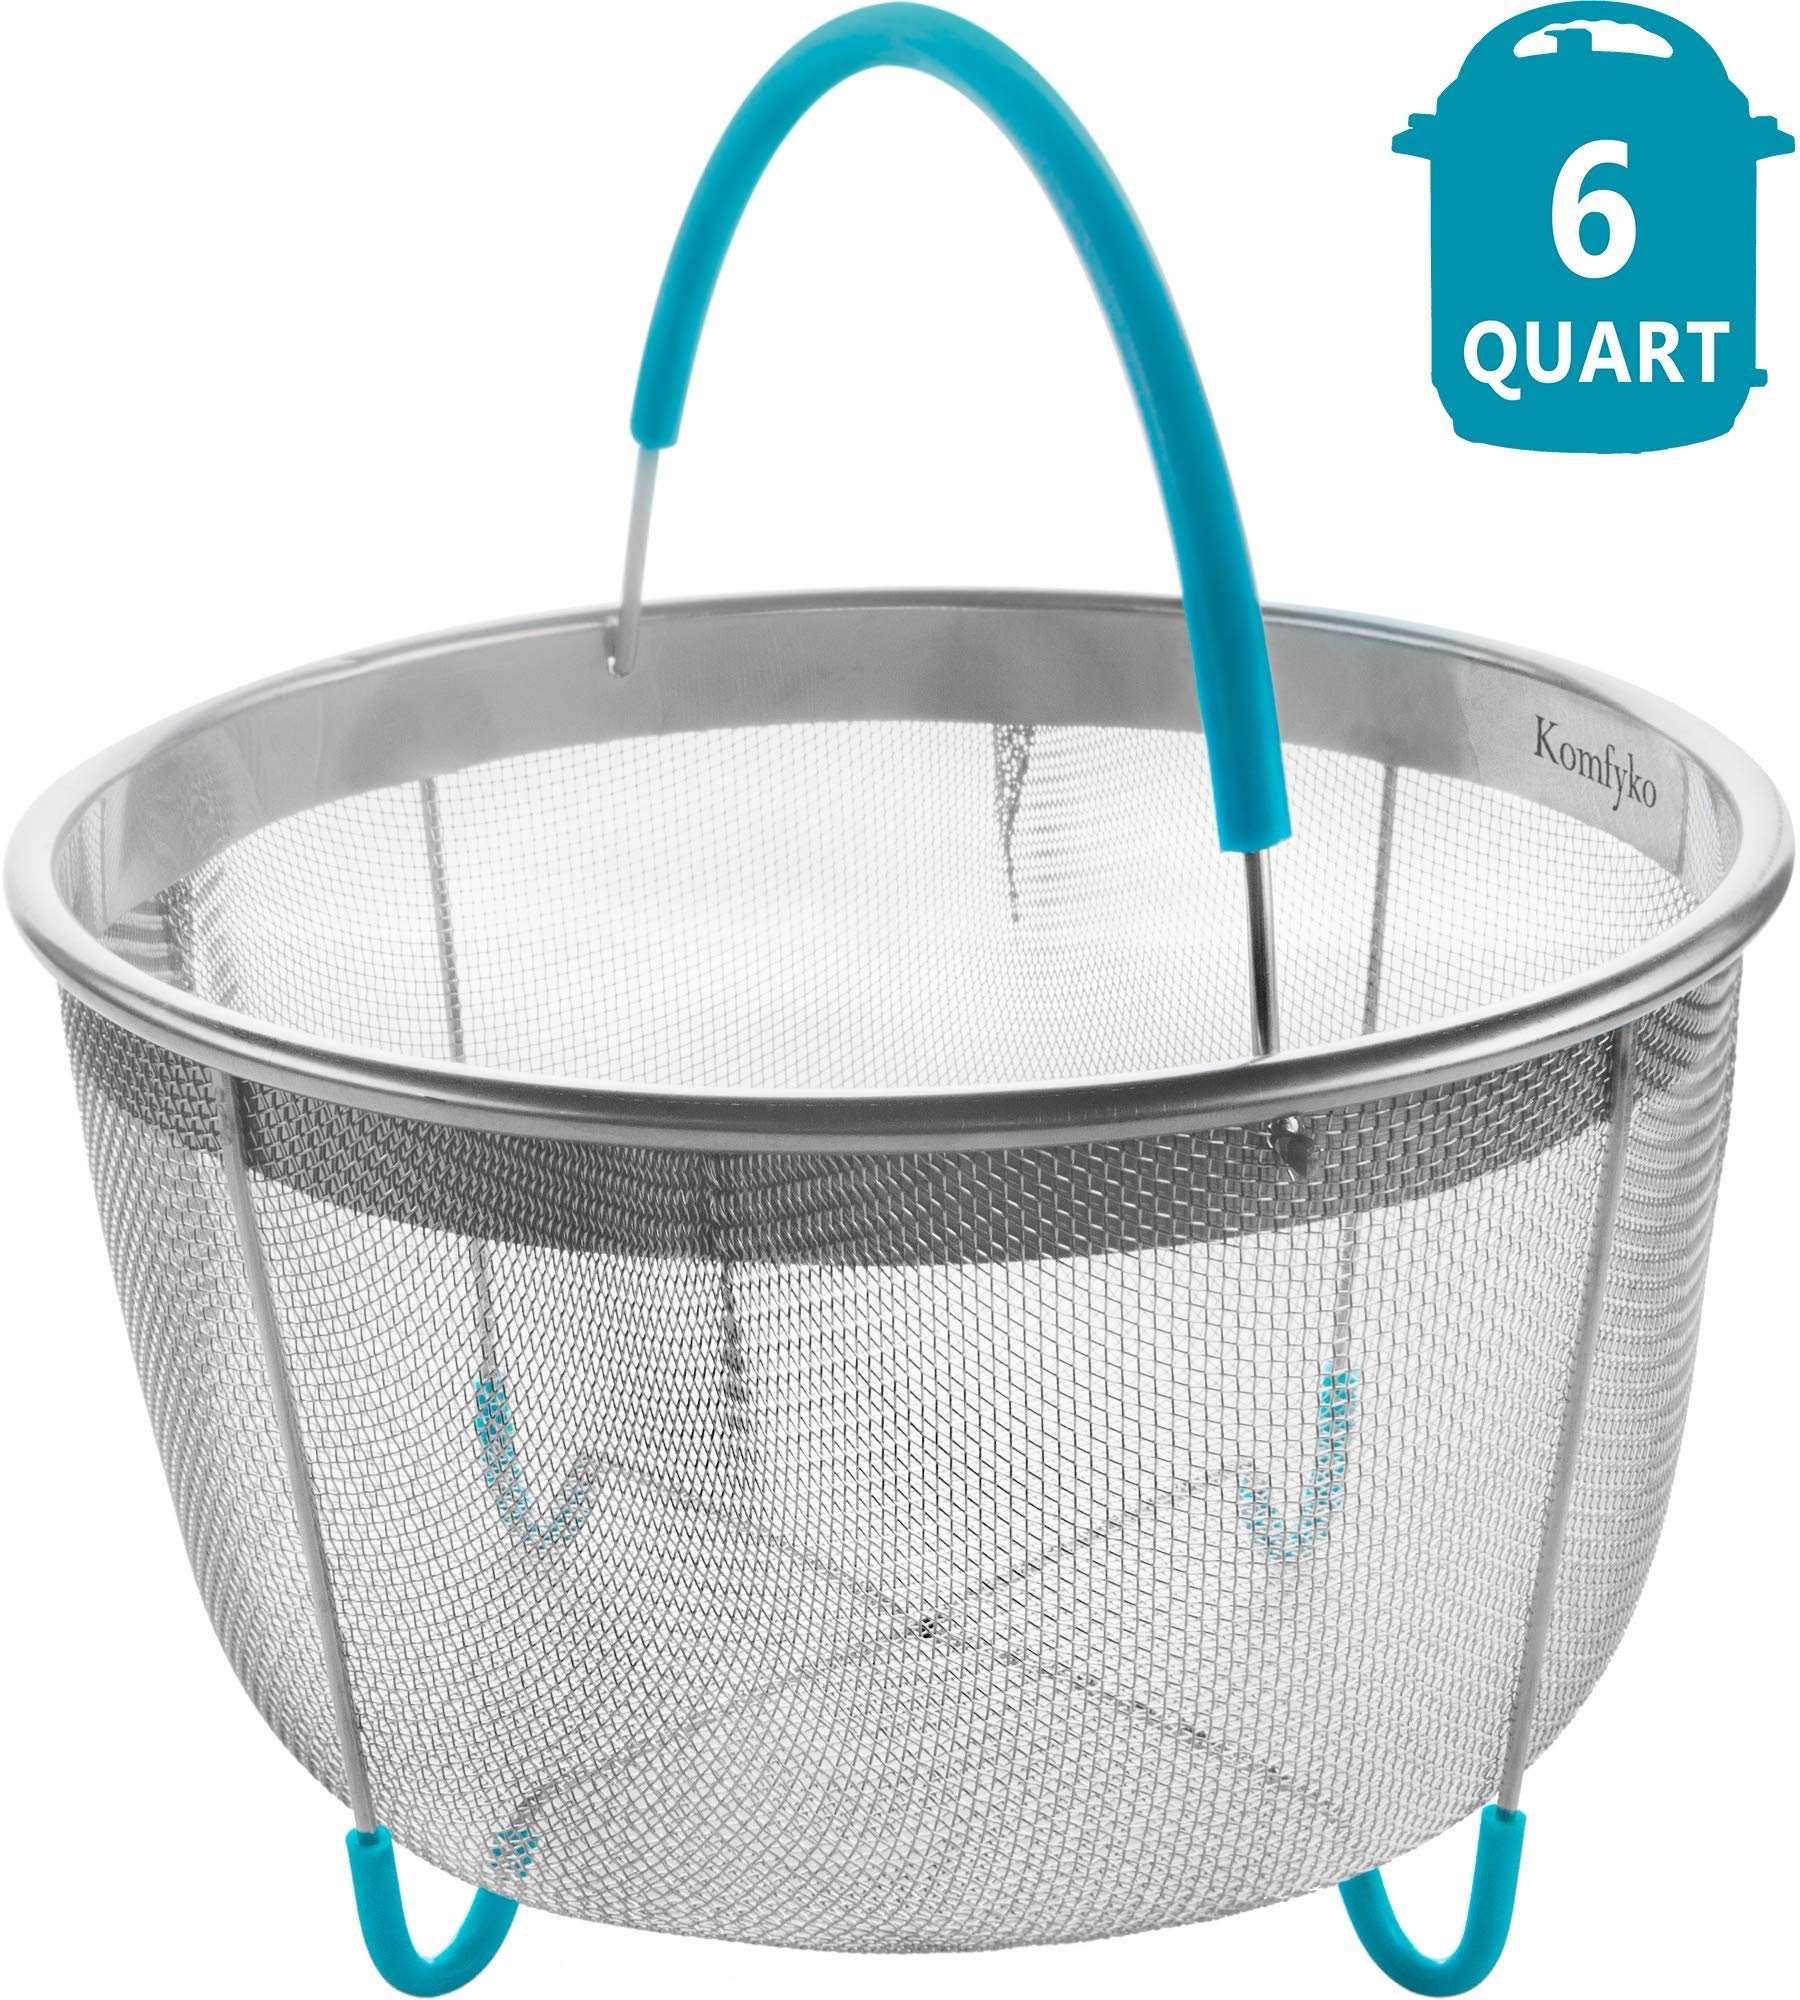 Komfyko Steamer Basket 6 Quart [3qt 8qt Avail]- Compatible with Instant Pot Accessories 6qt and Other Pressure Cooker Brands - IP Stainless Steel Insert with Silicone Handle and Feet for InstaPot